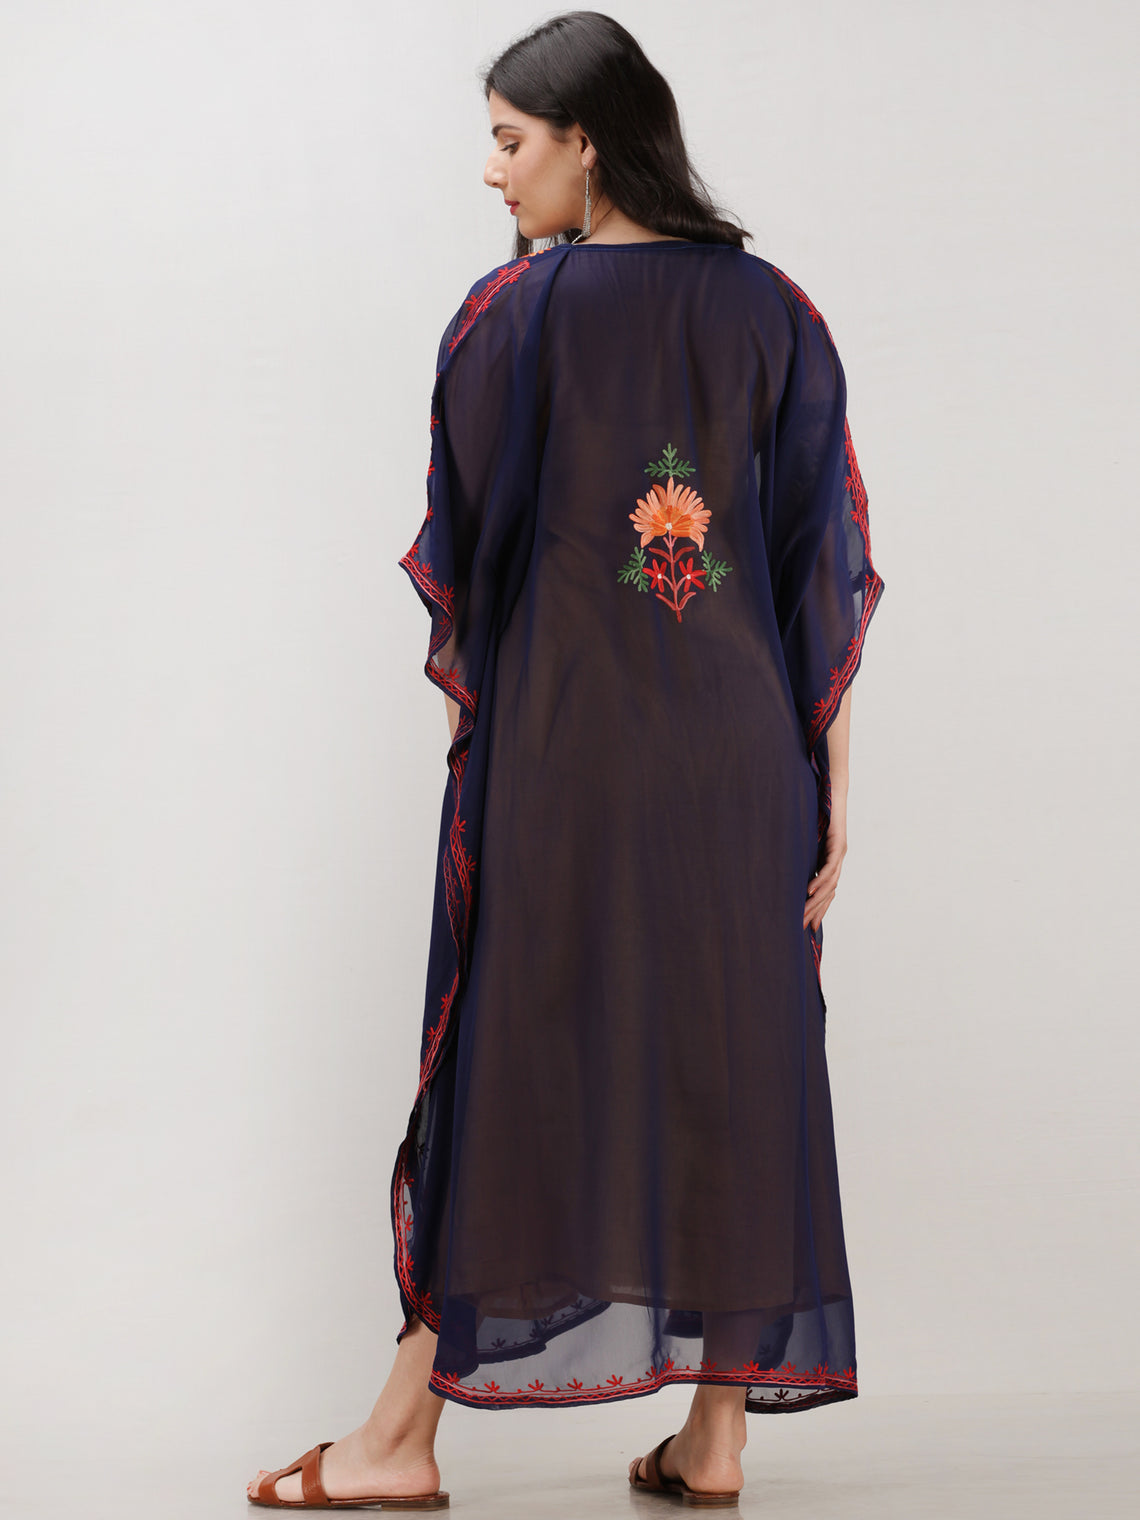 Navy Blue Multicolor Aari Embroidered Kashmere Free Size Georgette Kaftan  - K12K008